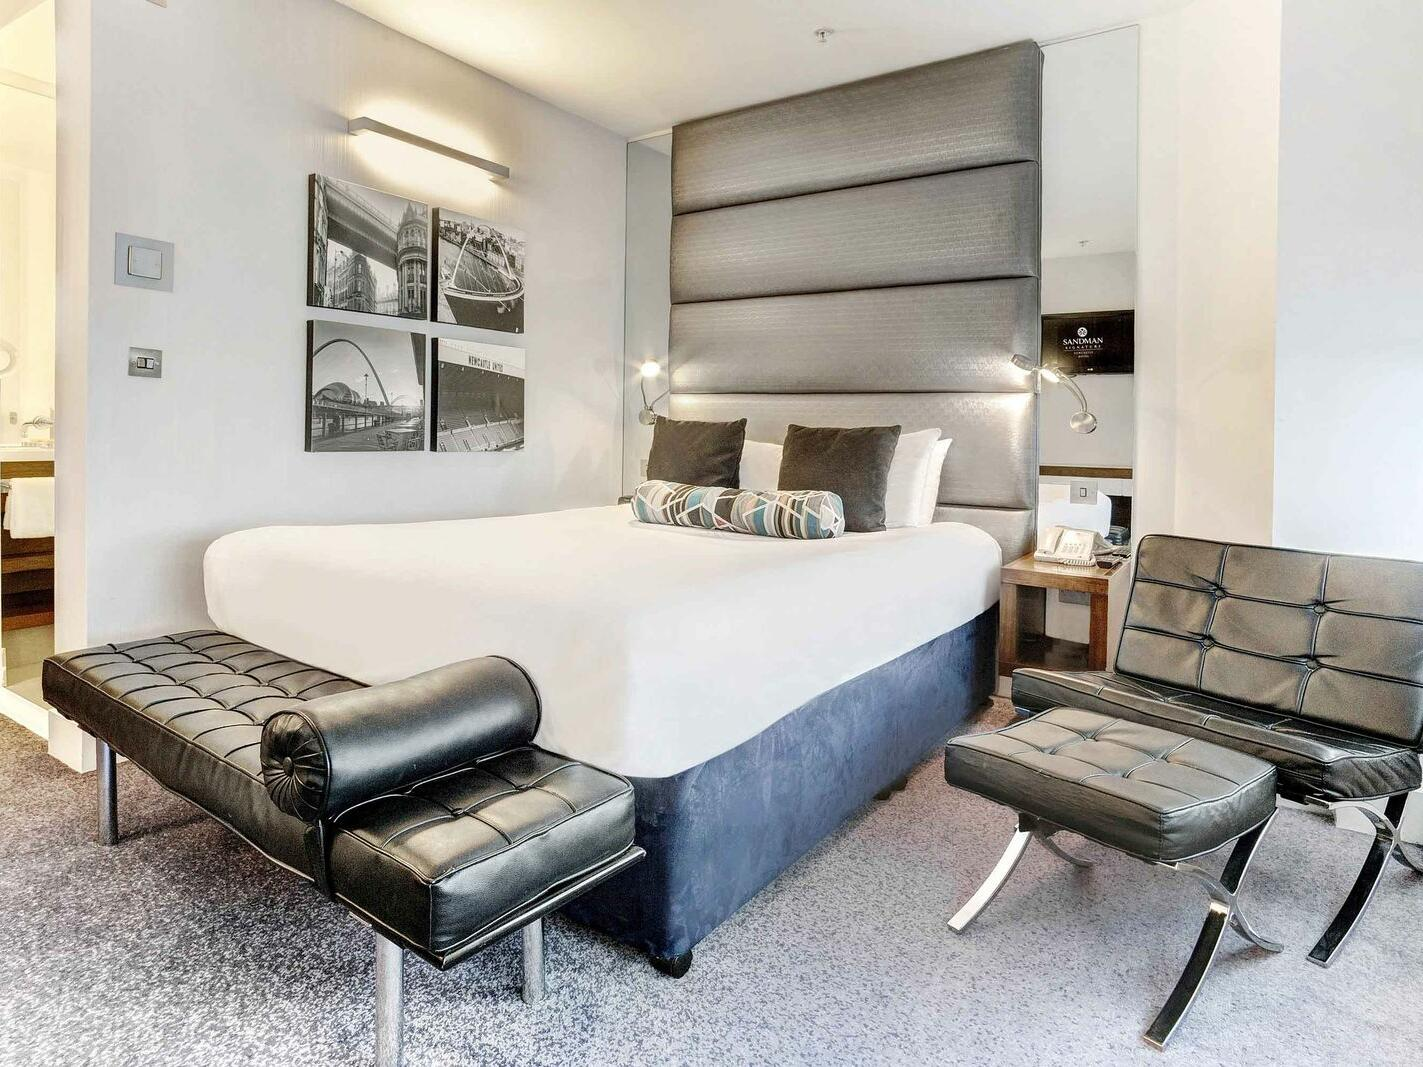 The King Room at Sandman Signature Newcastle Hotel with one king bed (with premium pillow-top) with a two seater black leather chair on the side of the bed with a foot rest